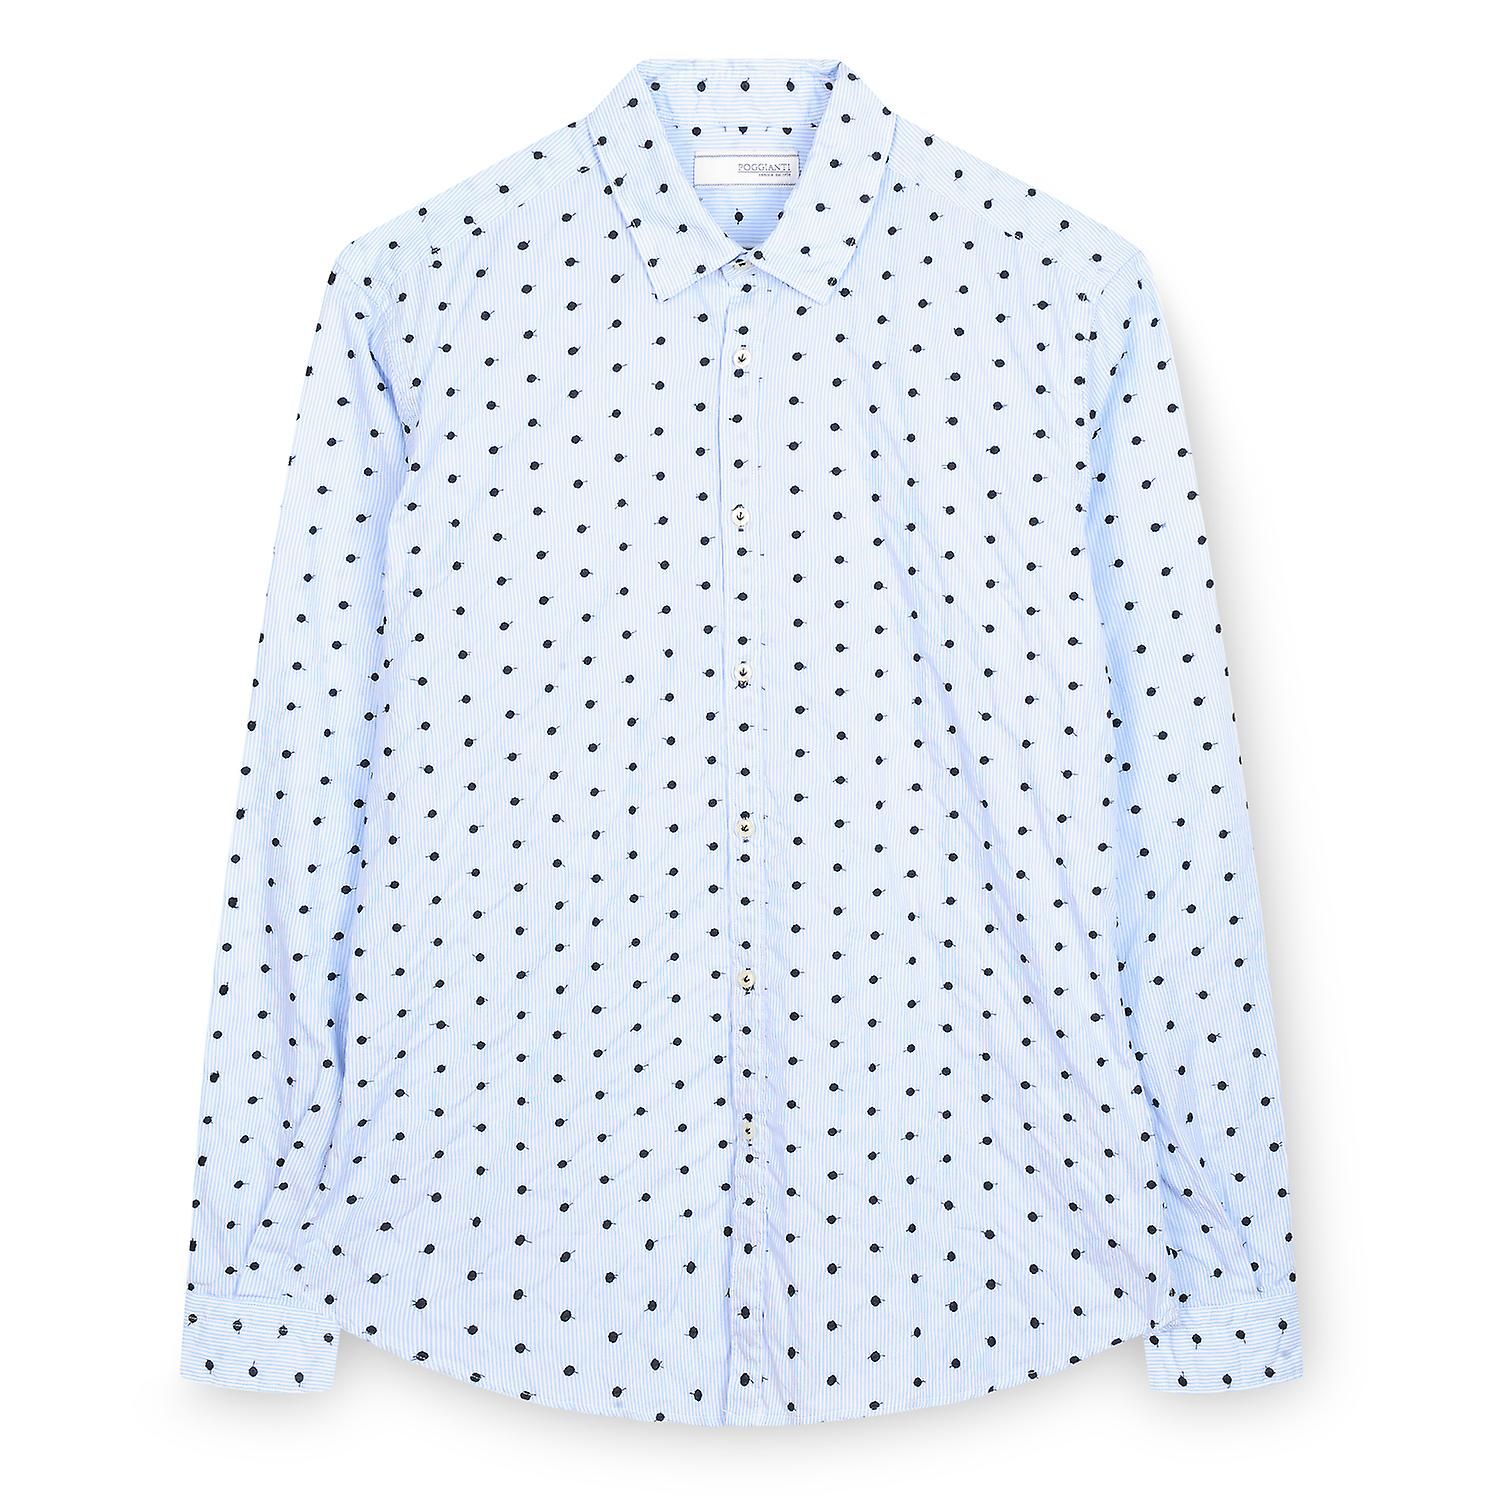 Fabio Giovanni Cornello Shirt - Expertly crafted in an Italian cotton blend - High Quality Italian Shirt